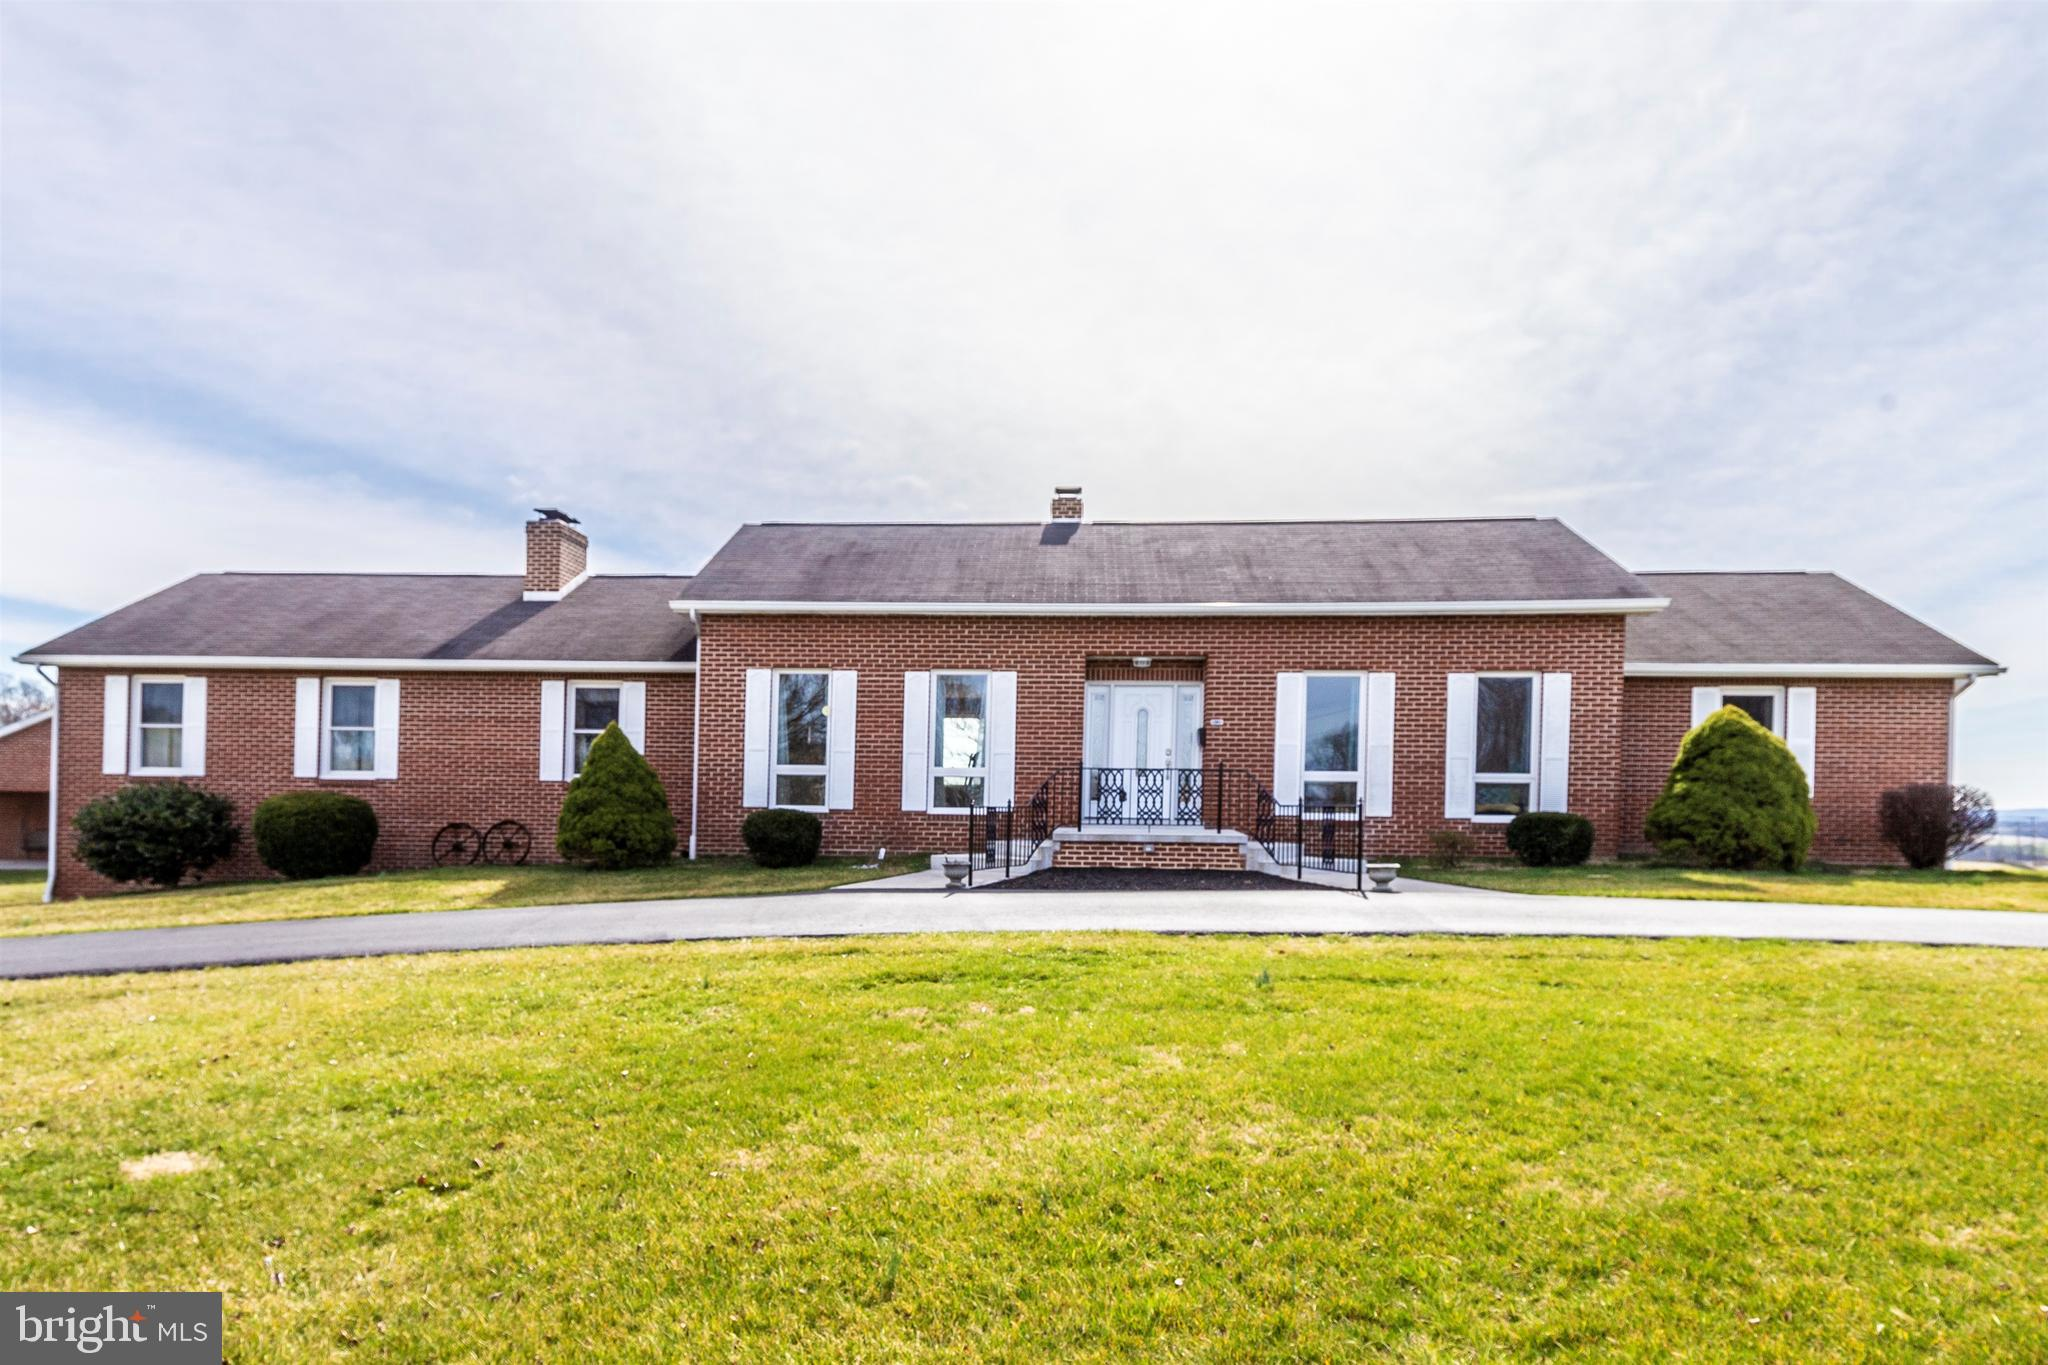 10426 WELTY ROAD, EMMITSBURG, MD 21727